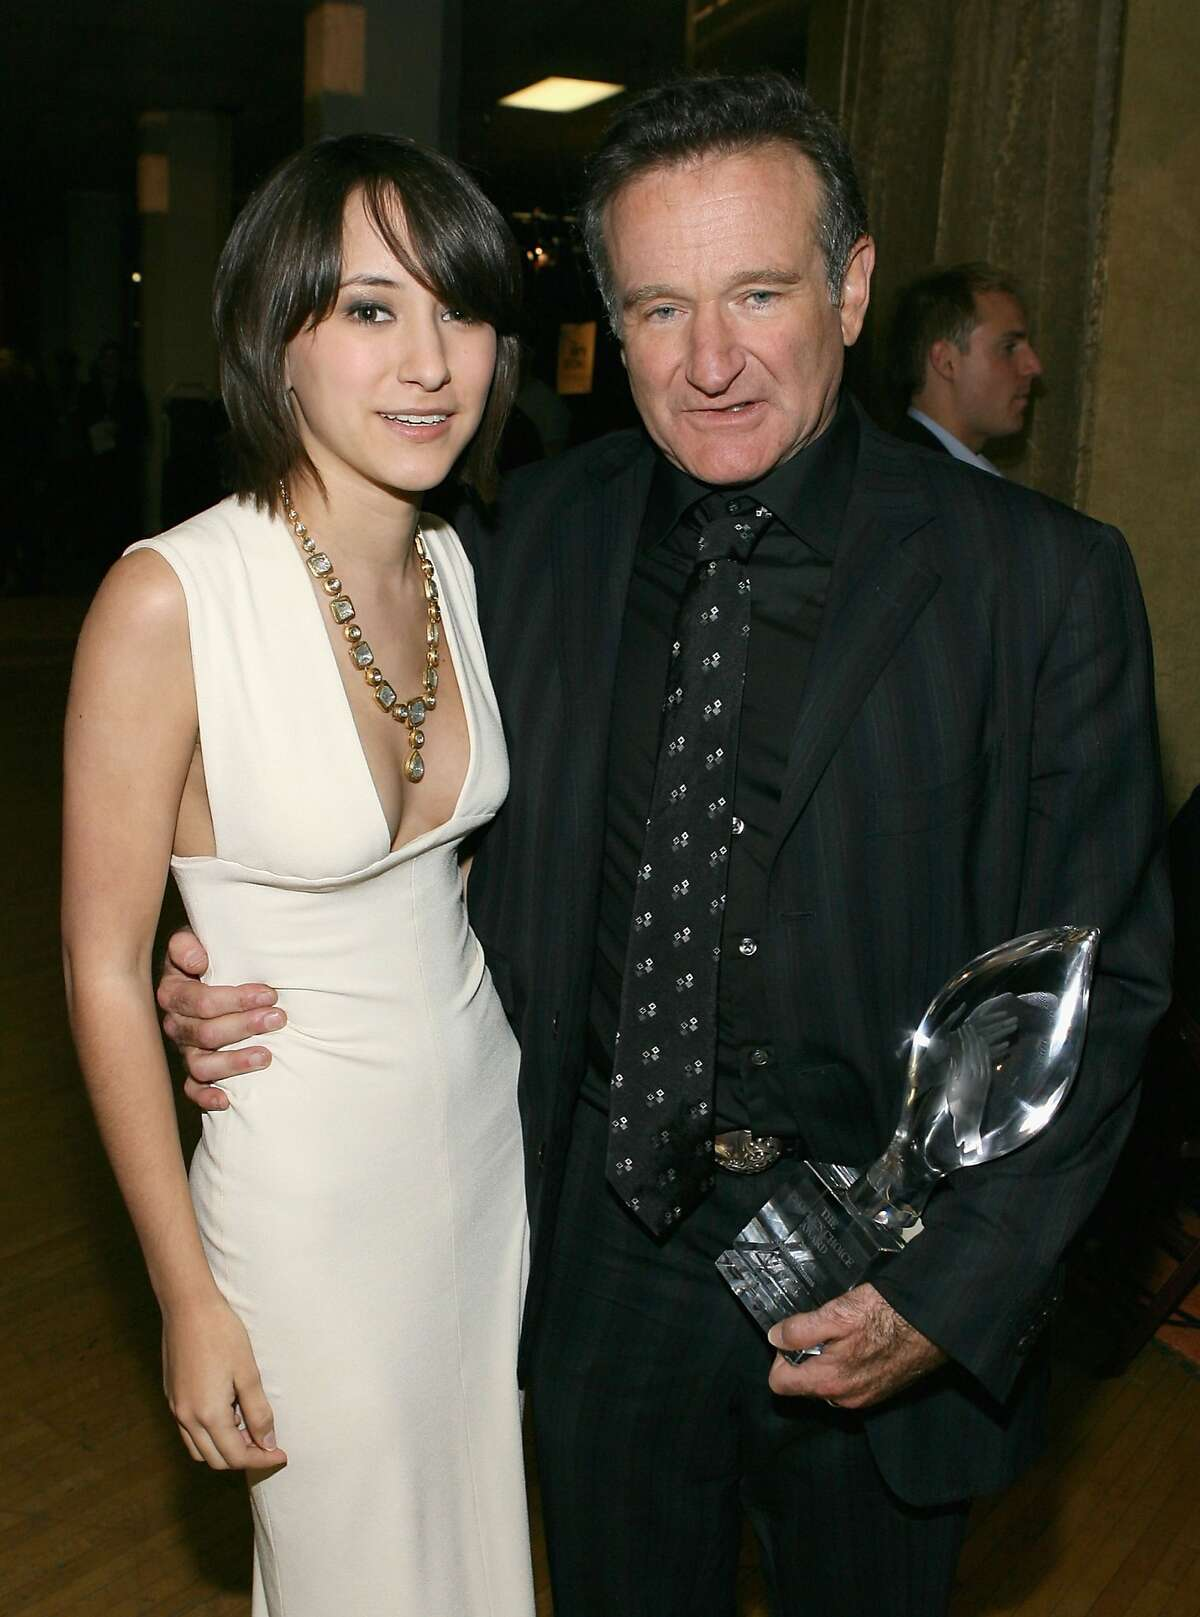 Zelda Williams and Robin Williams backstage during the 33rd Annual People's Choice Awards held at the Shrine Auditorium on January 9, 2007 in Los Angeles.